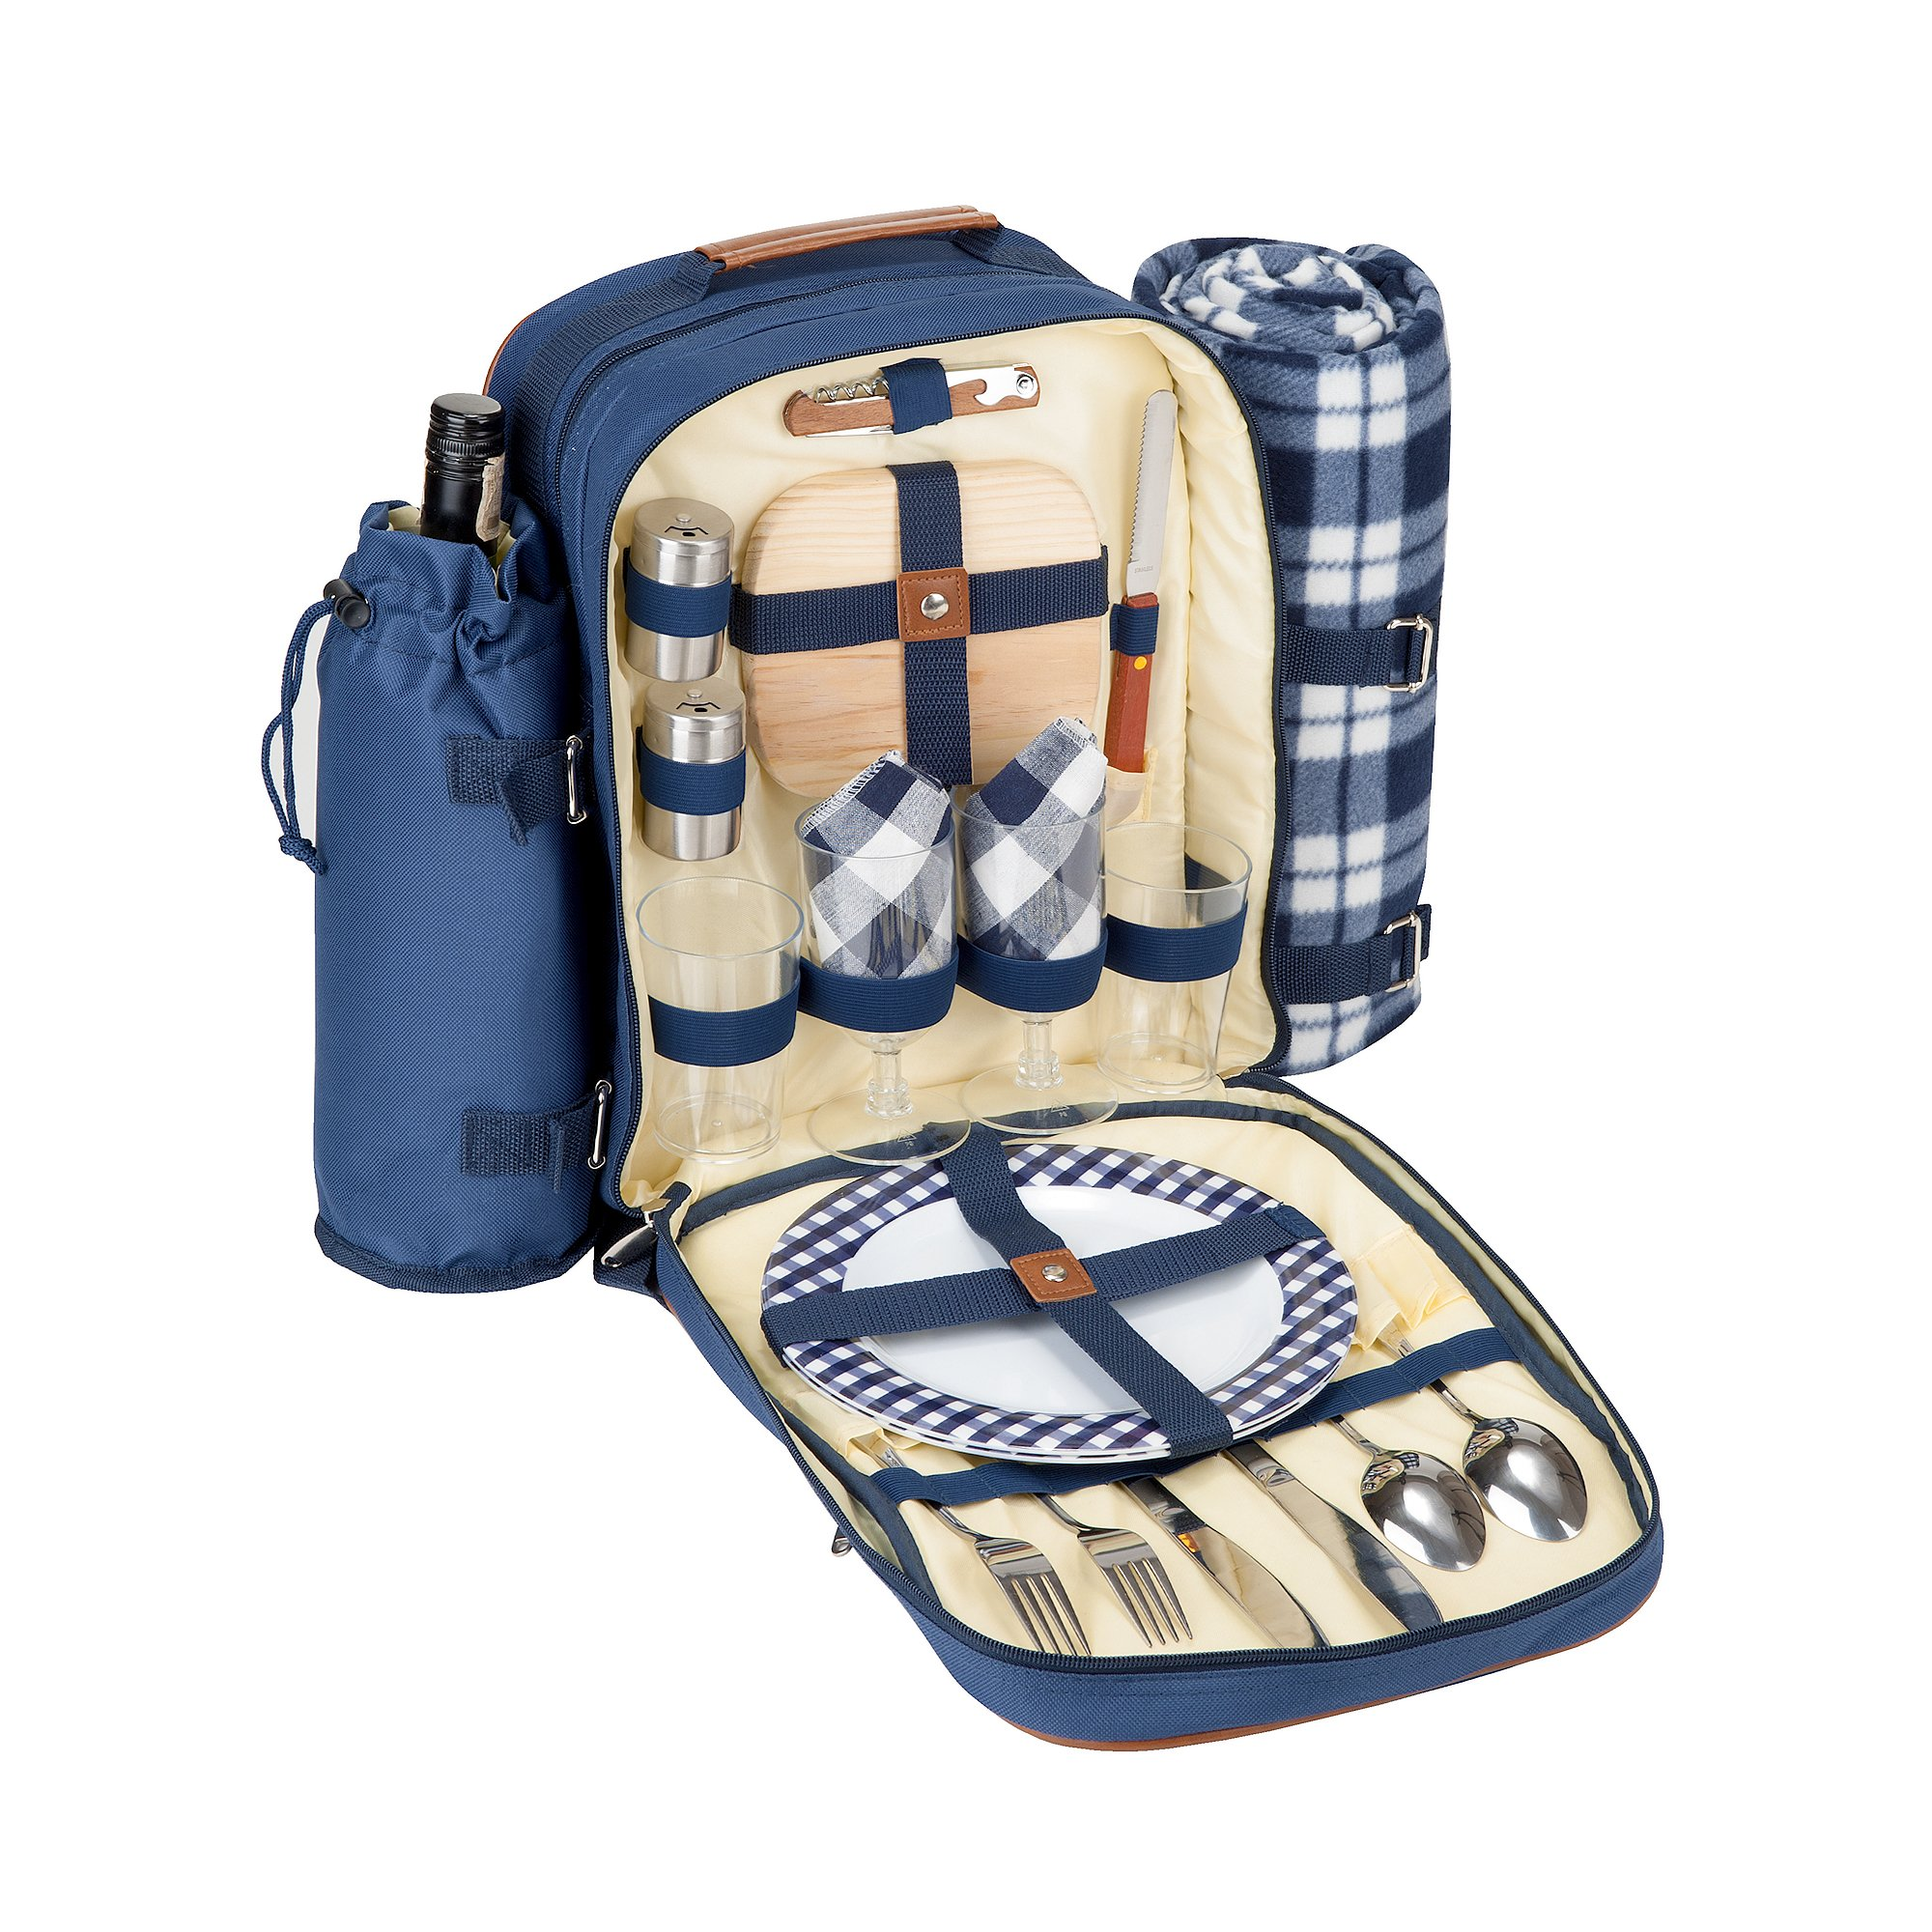 Insulated Picnic Backpack for 2 (Picnic Basket Alternative) | Cooler Compartment | Upgraded Picnic Set (Utensils, Dishes, Wine Holder, Blanket) | Food & Lunch Backpack Bag by PicniKing